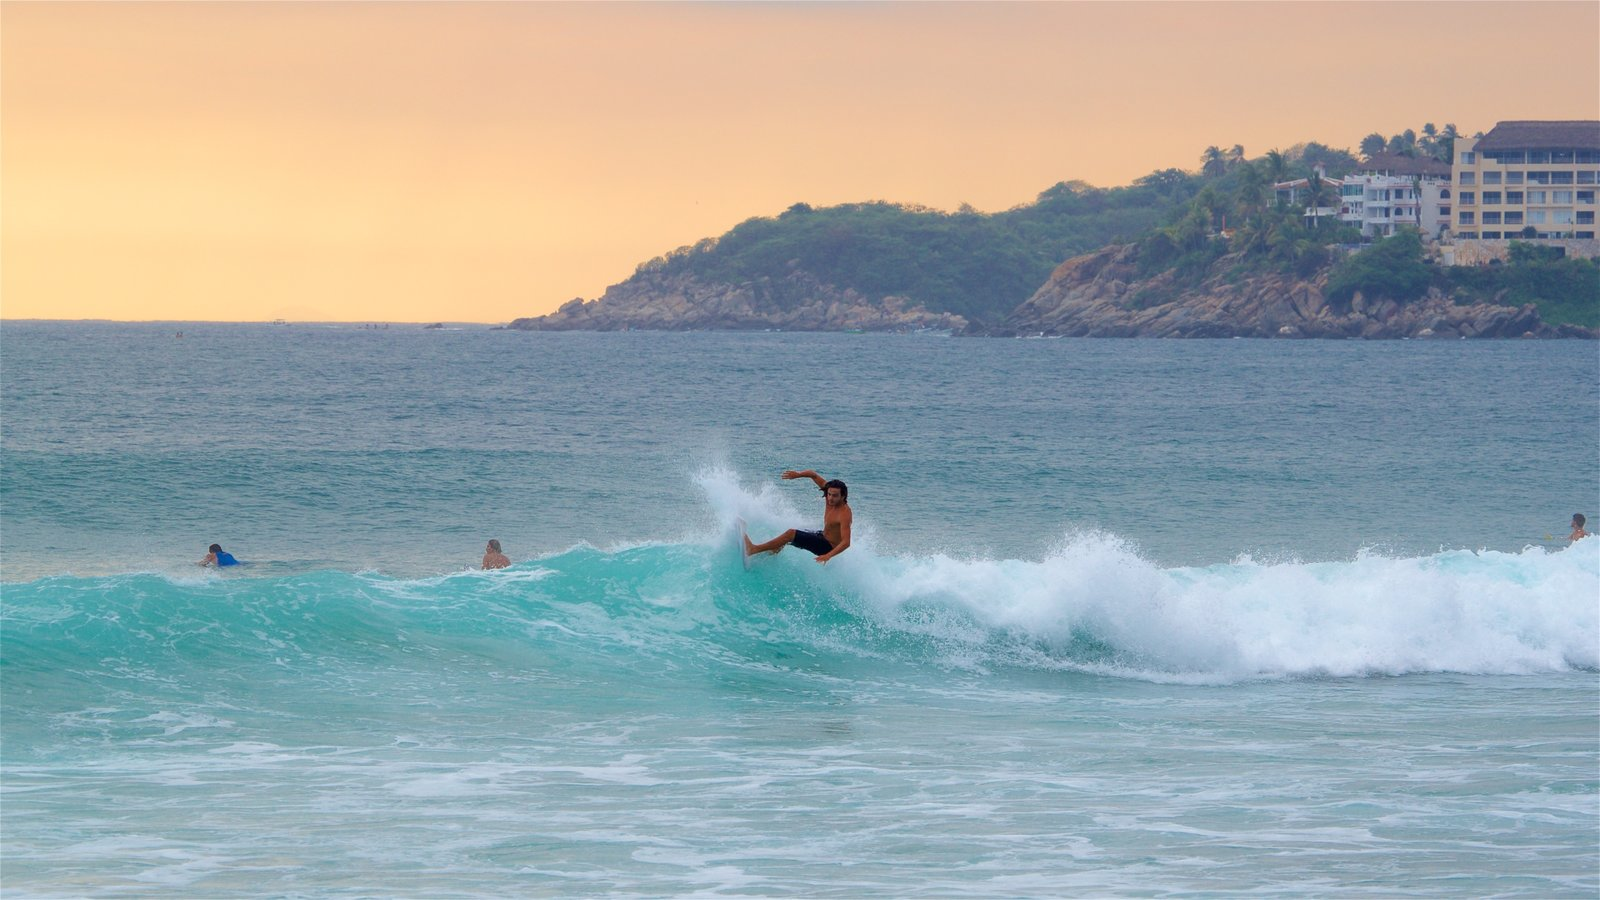 Puerto Escondido featuring surf, general coastal views and surfing